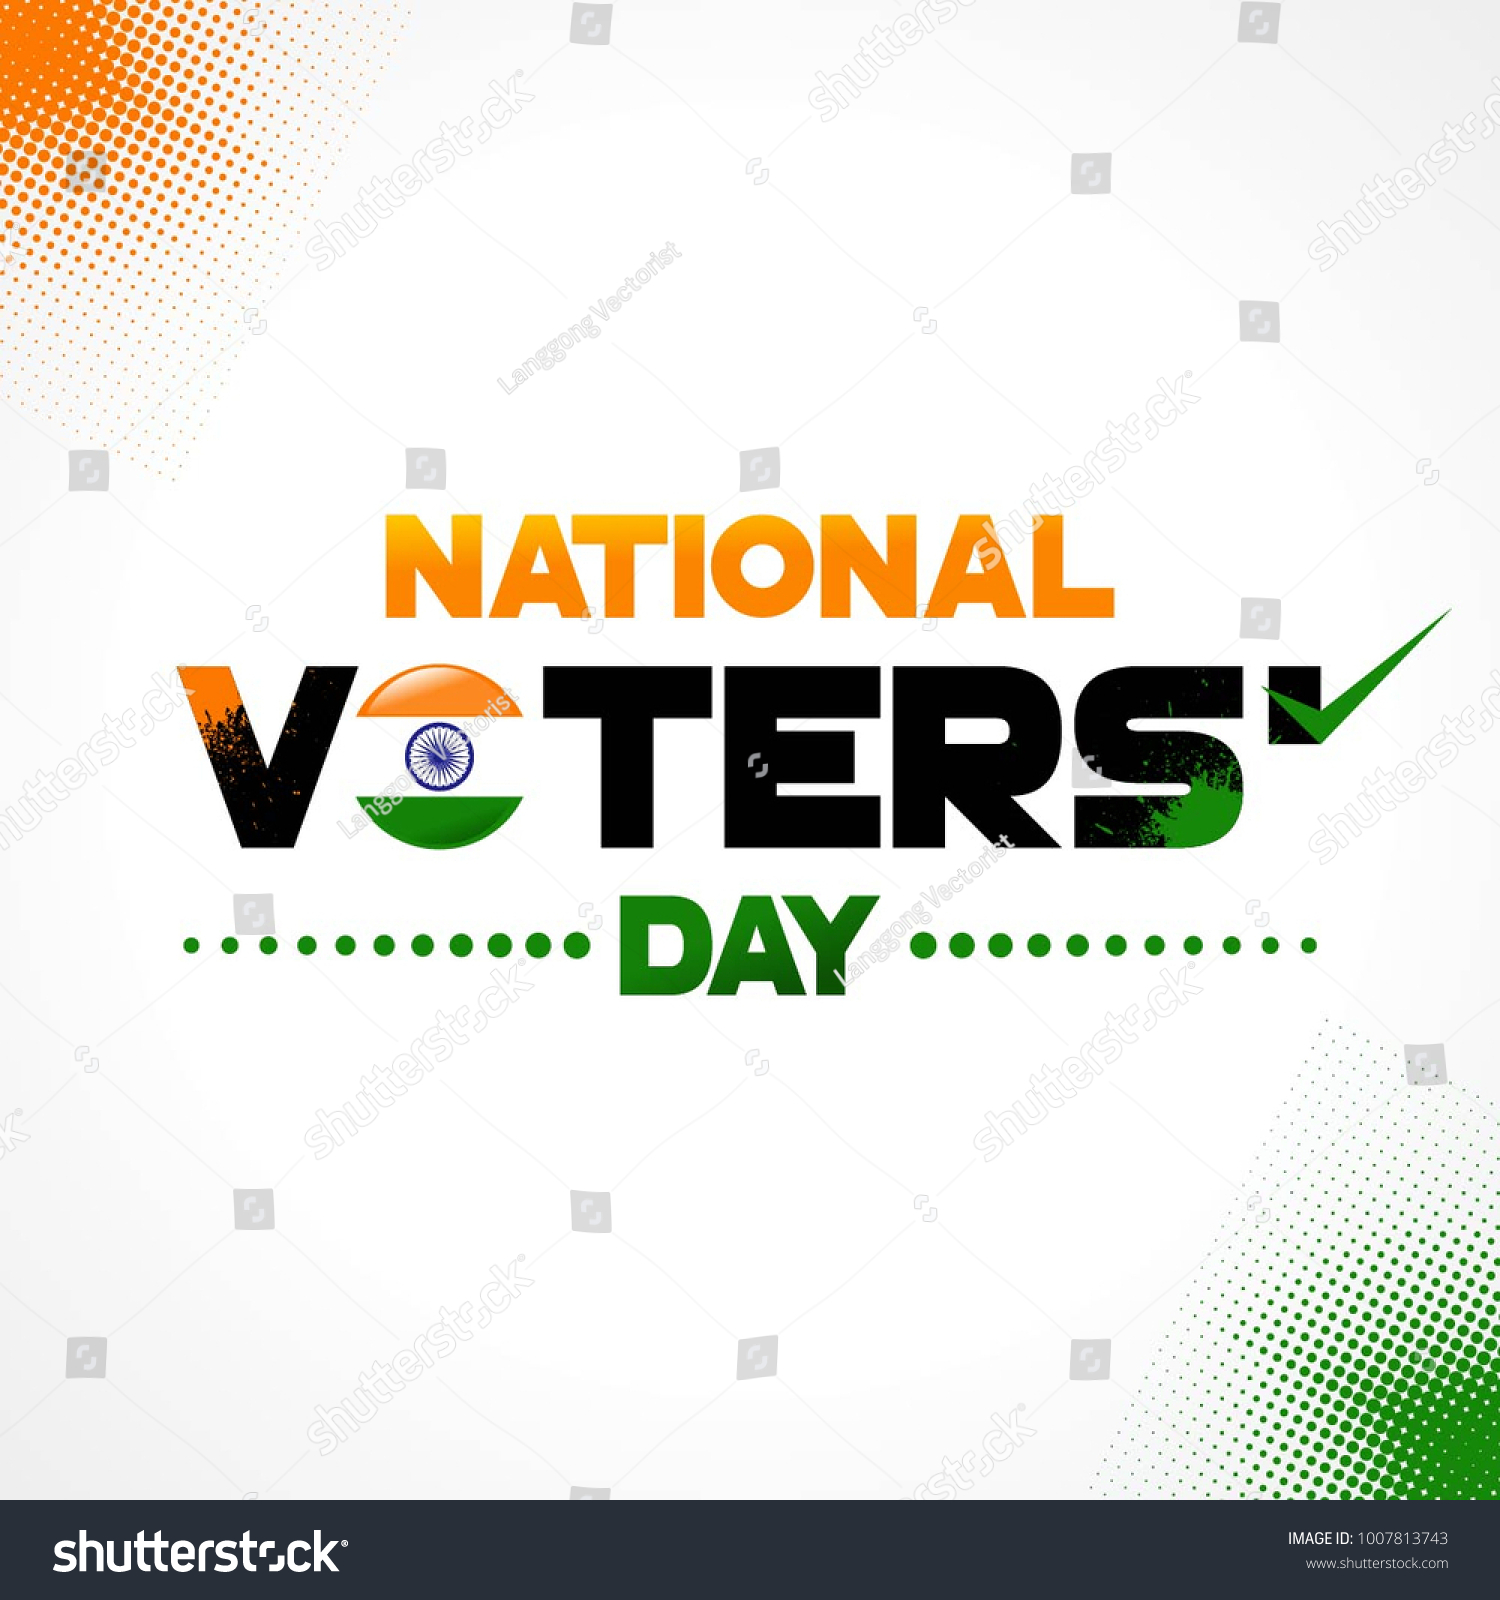 National Voters Day India Square Vector Stock Vector (Royalty Free